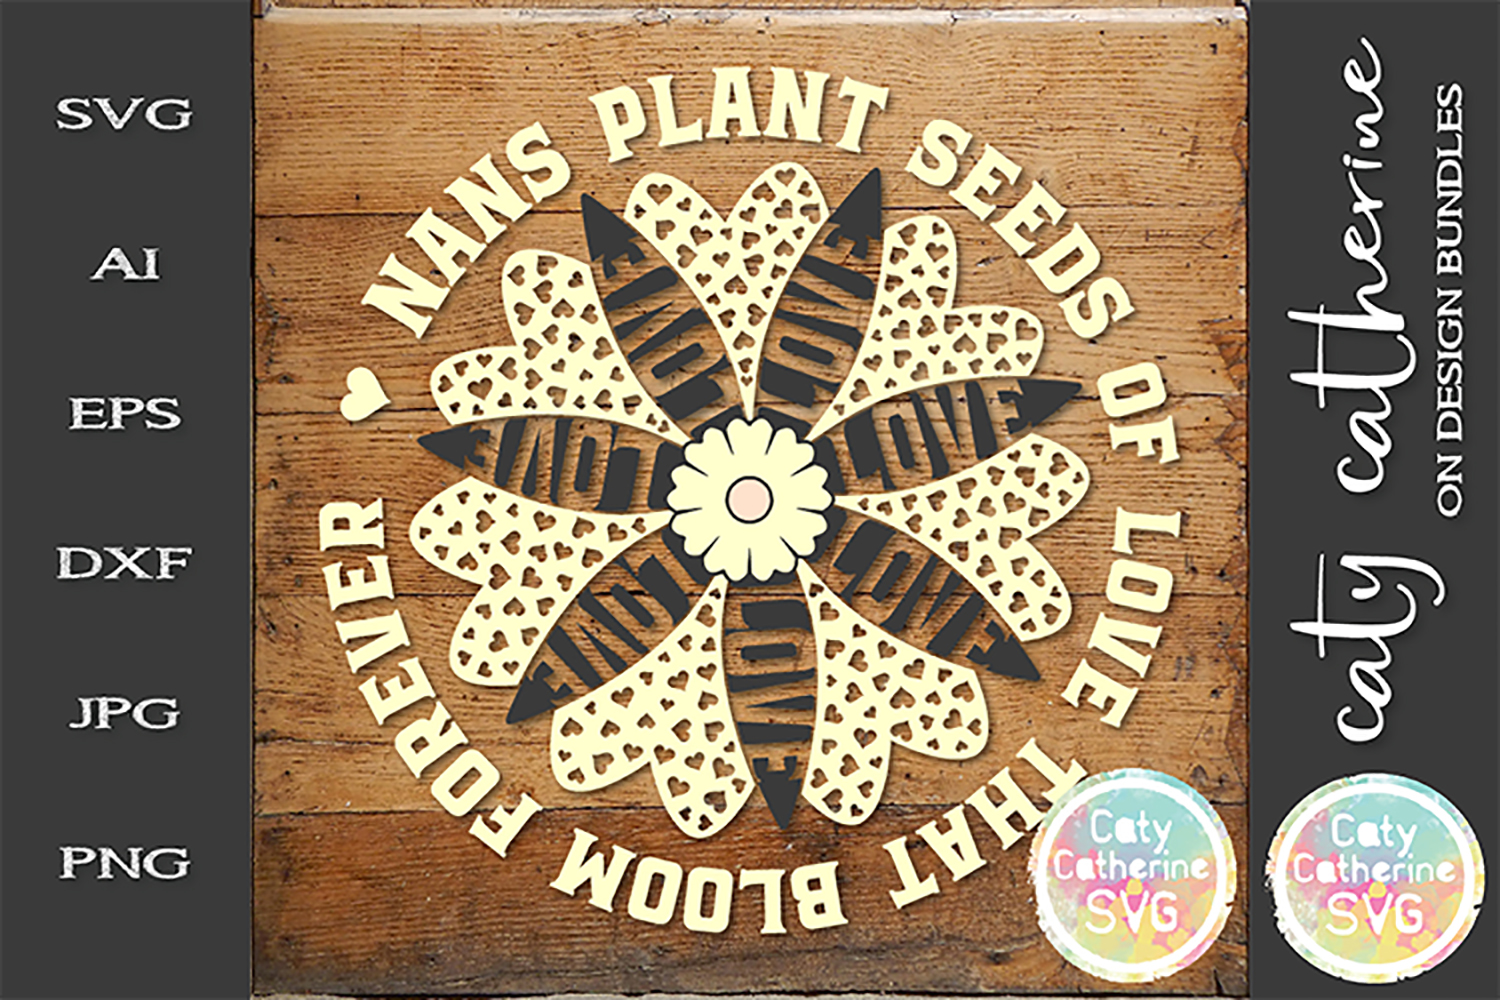 Nans Plant Seeds Of Love That Bloom Forever SVG Cut example image 1